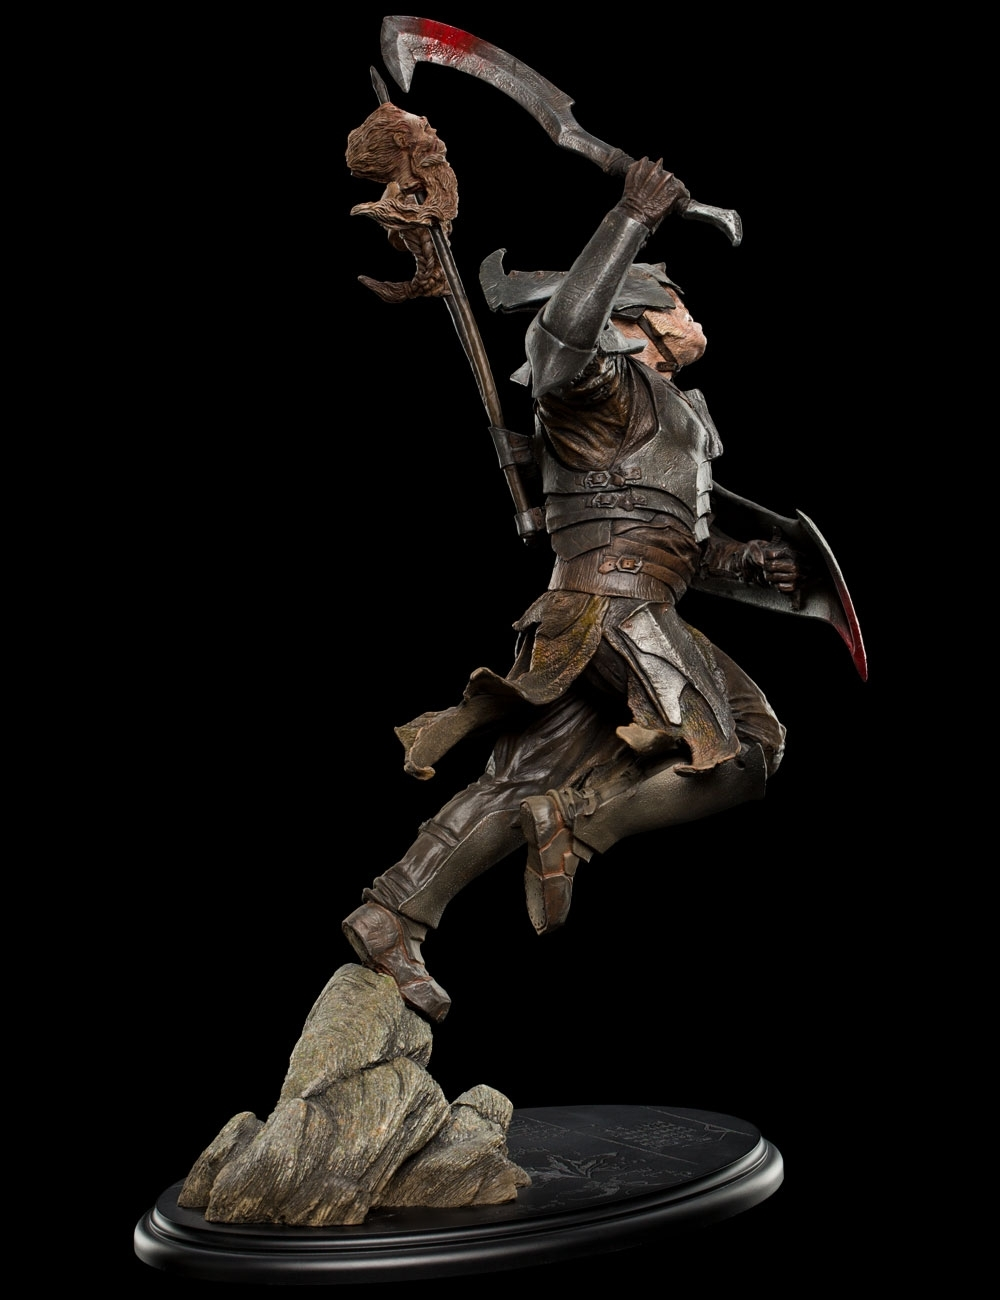 The Hobbit: Dol Guldur Orc Soldier - 1/6 Scale Replica Figure image